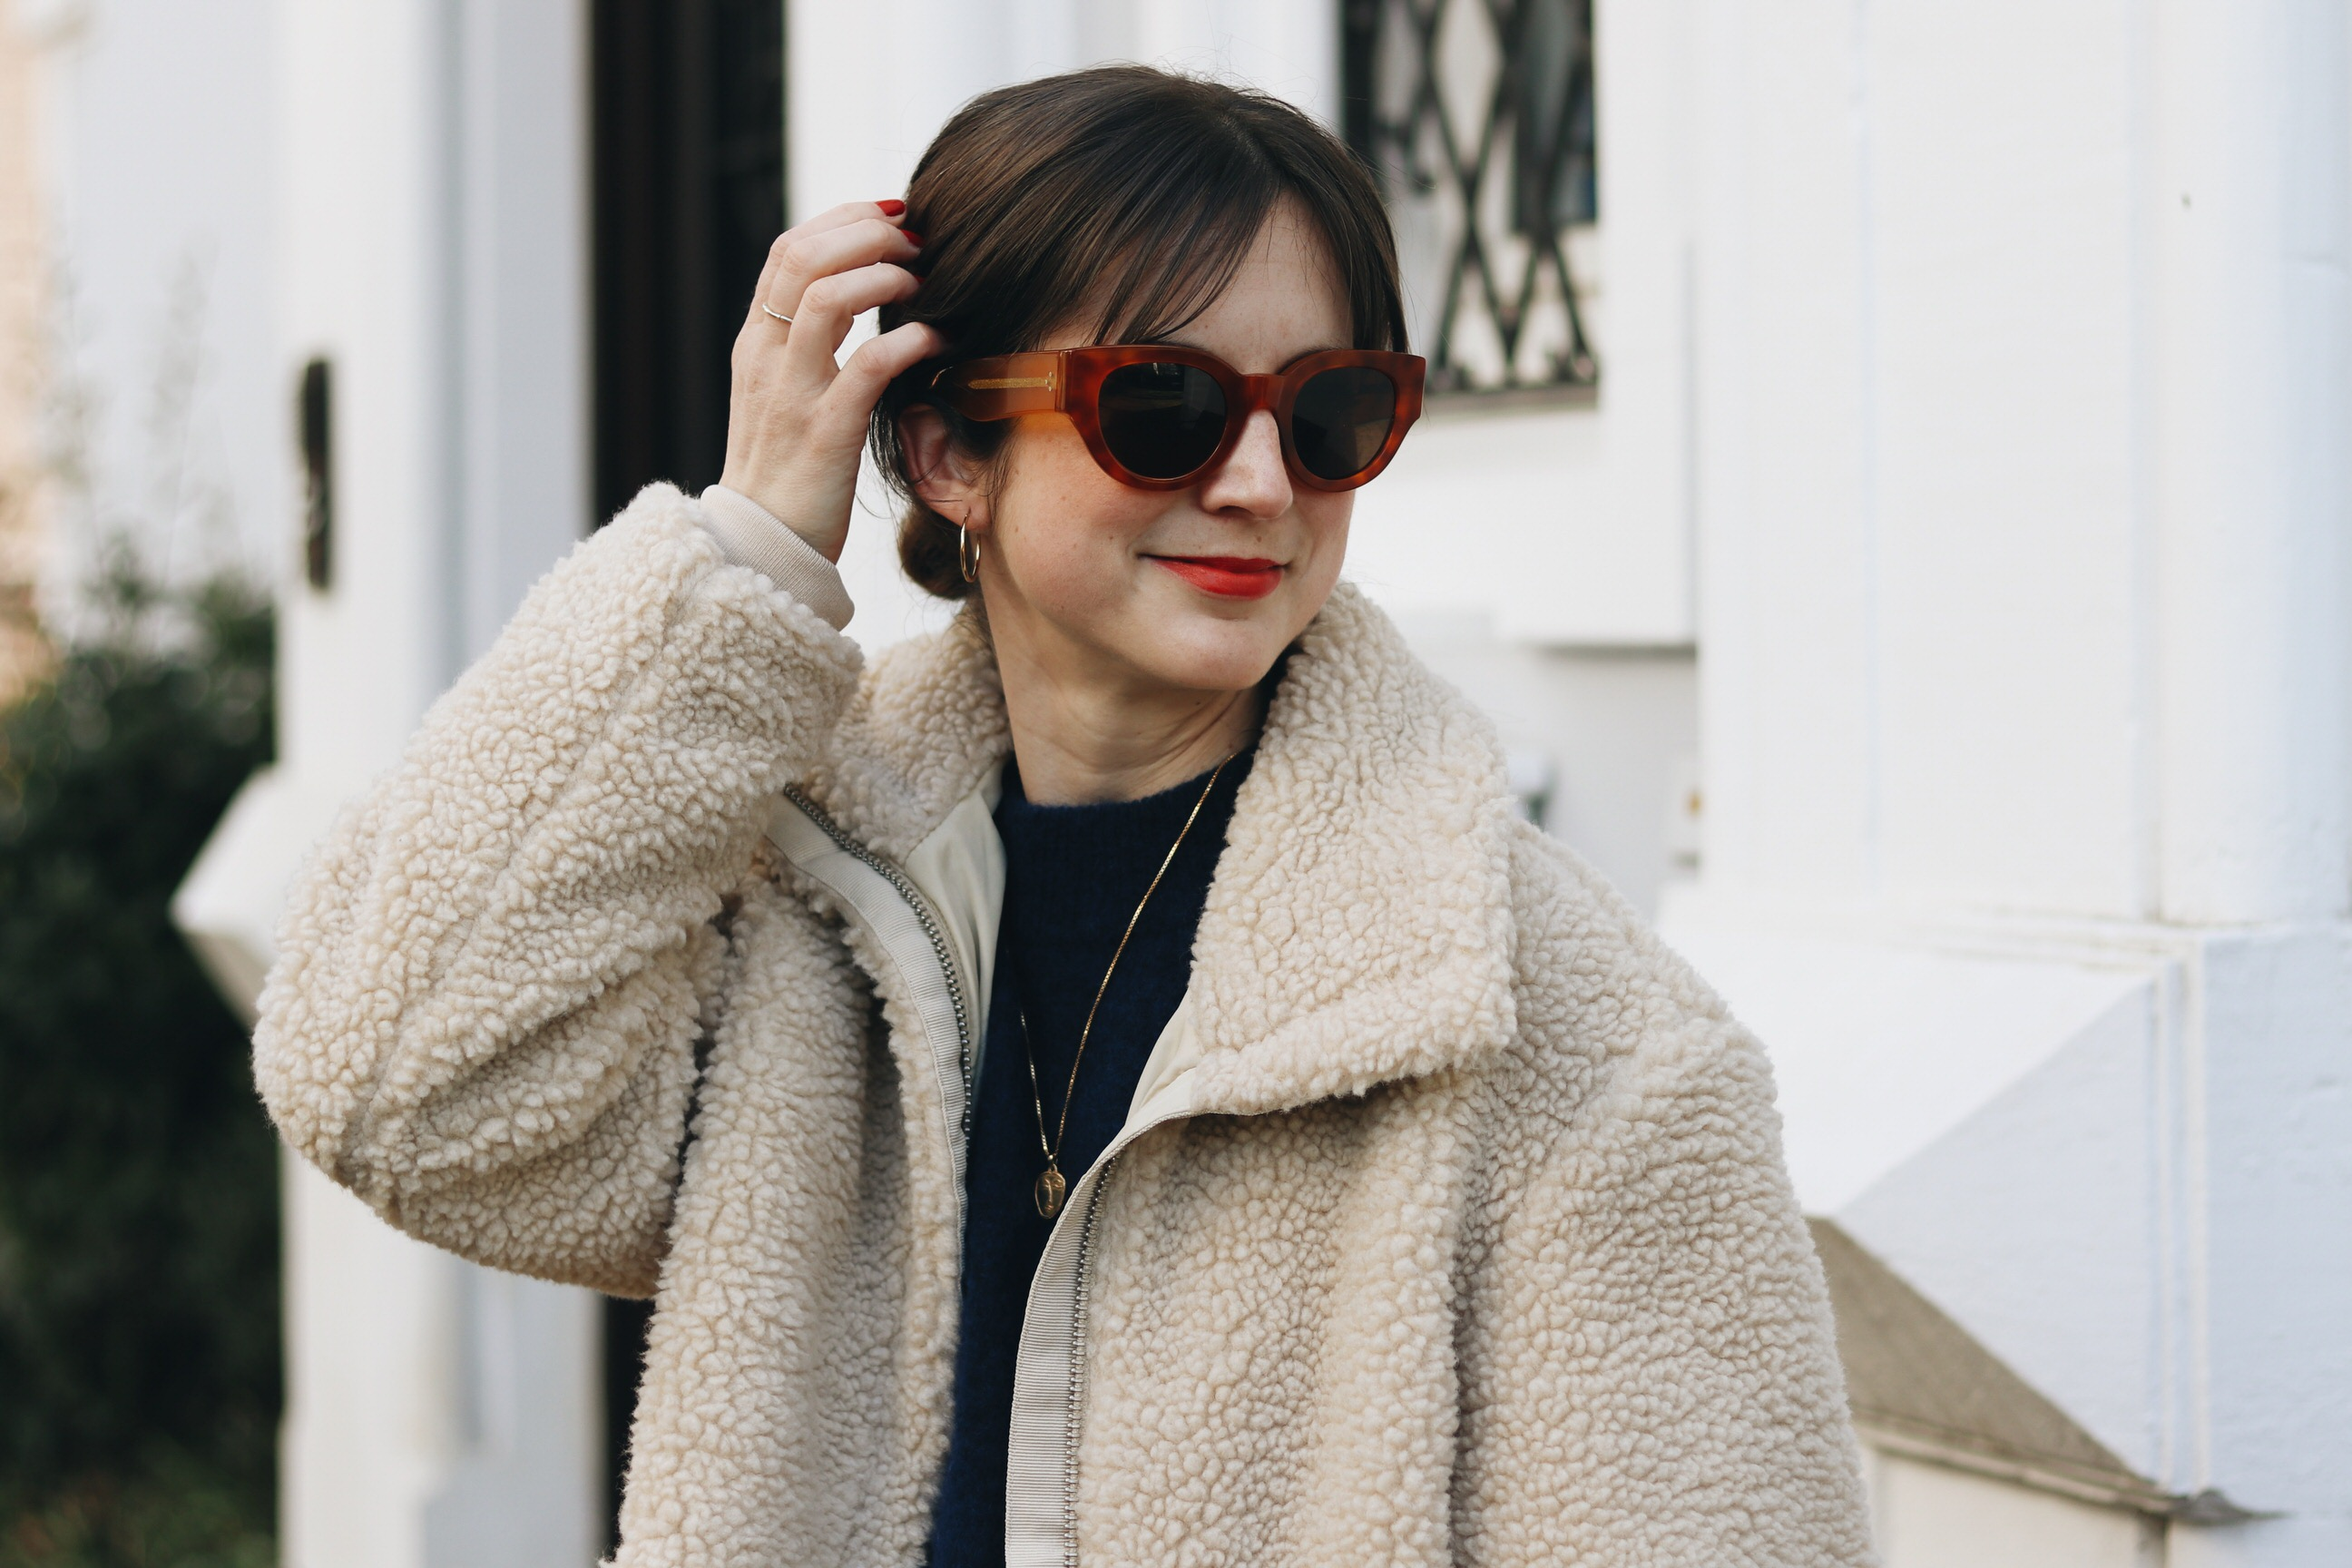 Celine Sonnenbrille French Chic Winter Look Modeblog Neele